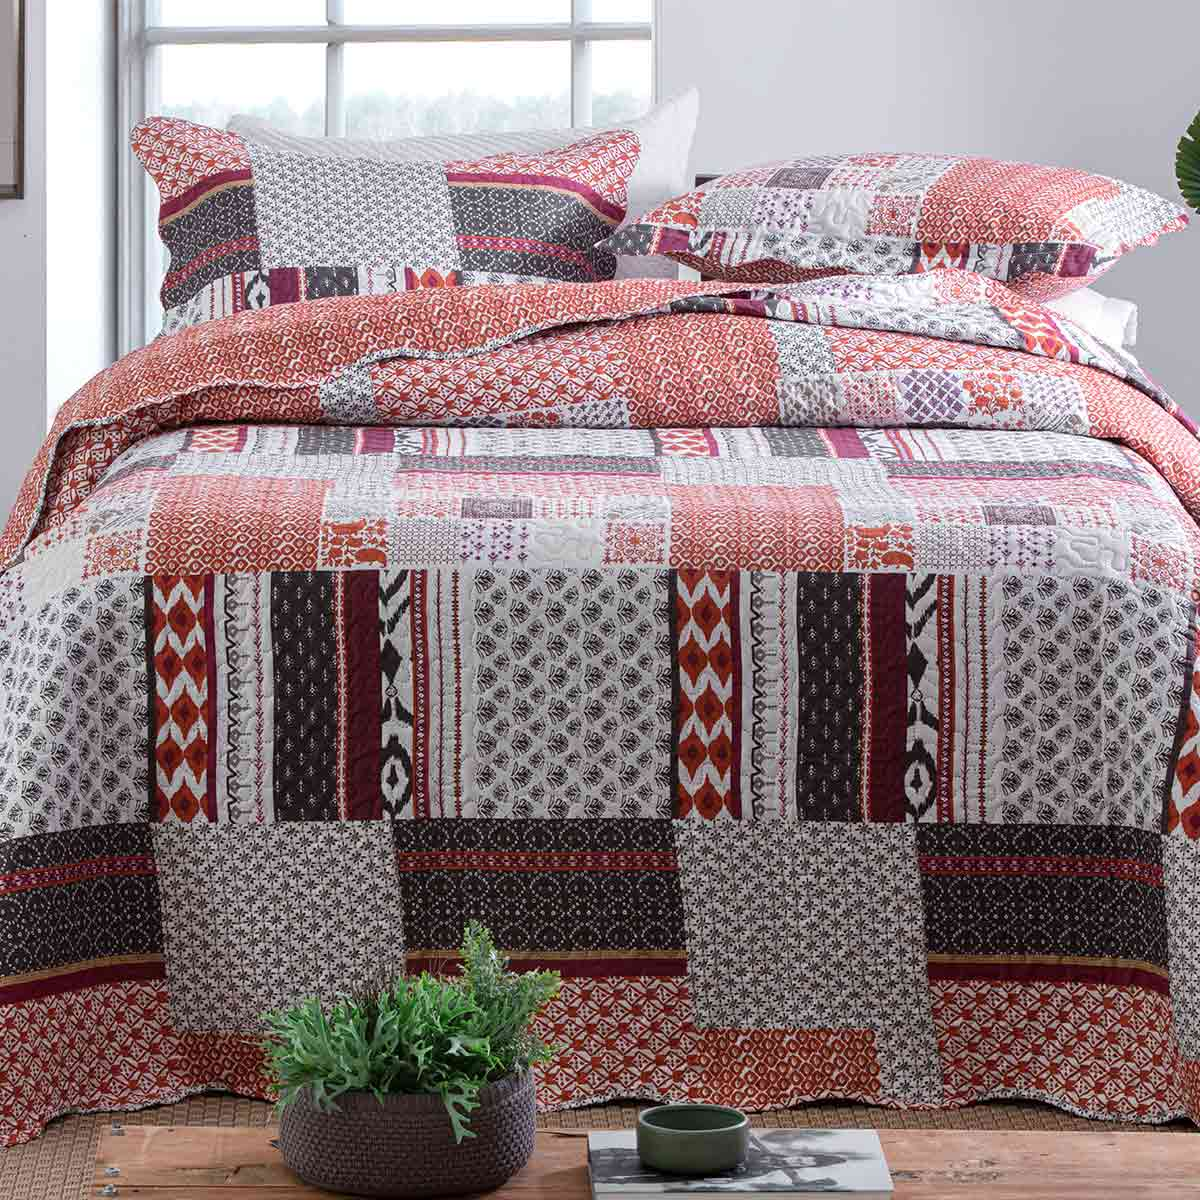 Cobreleito Patchwork Ultra Queen 3Pcs Turim 5